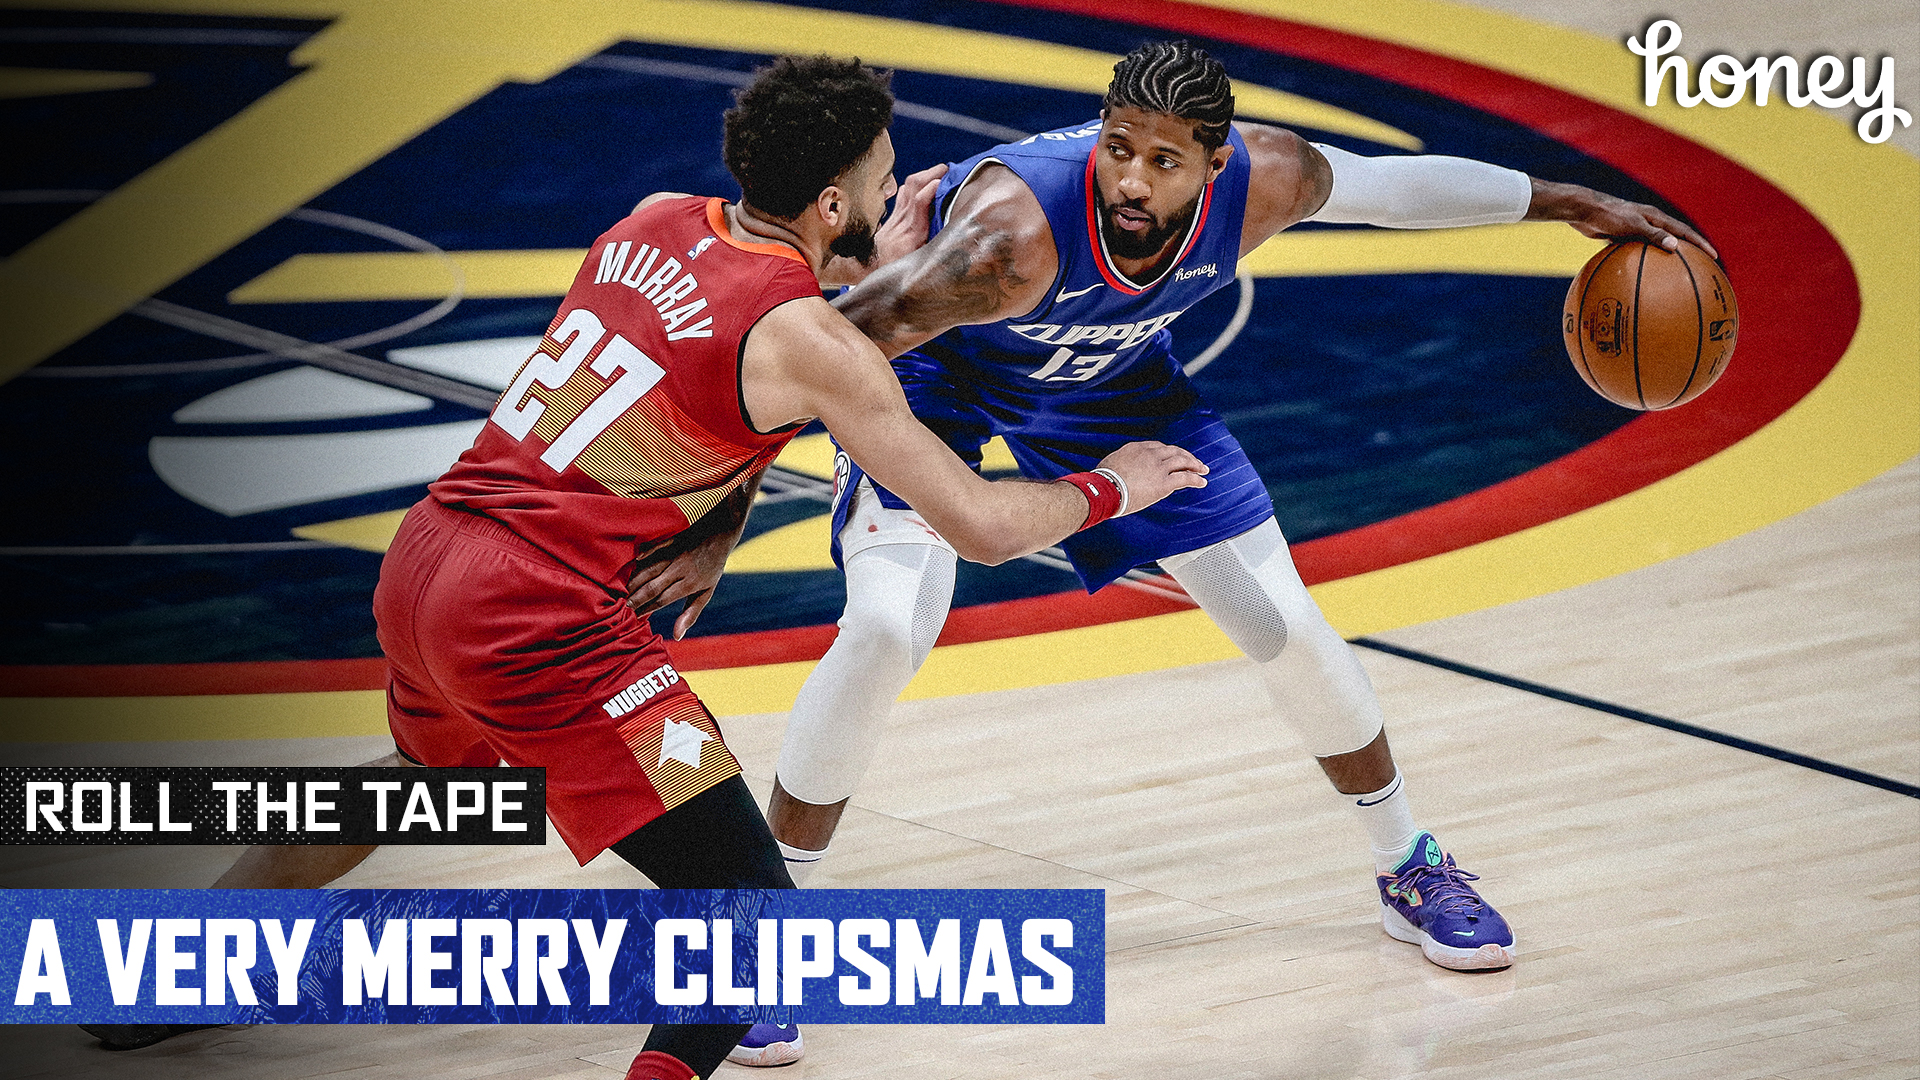 Roll The Tape | A Very Merry Clipsmas